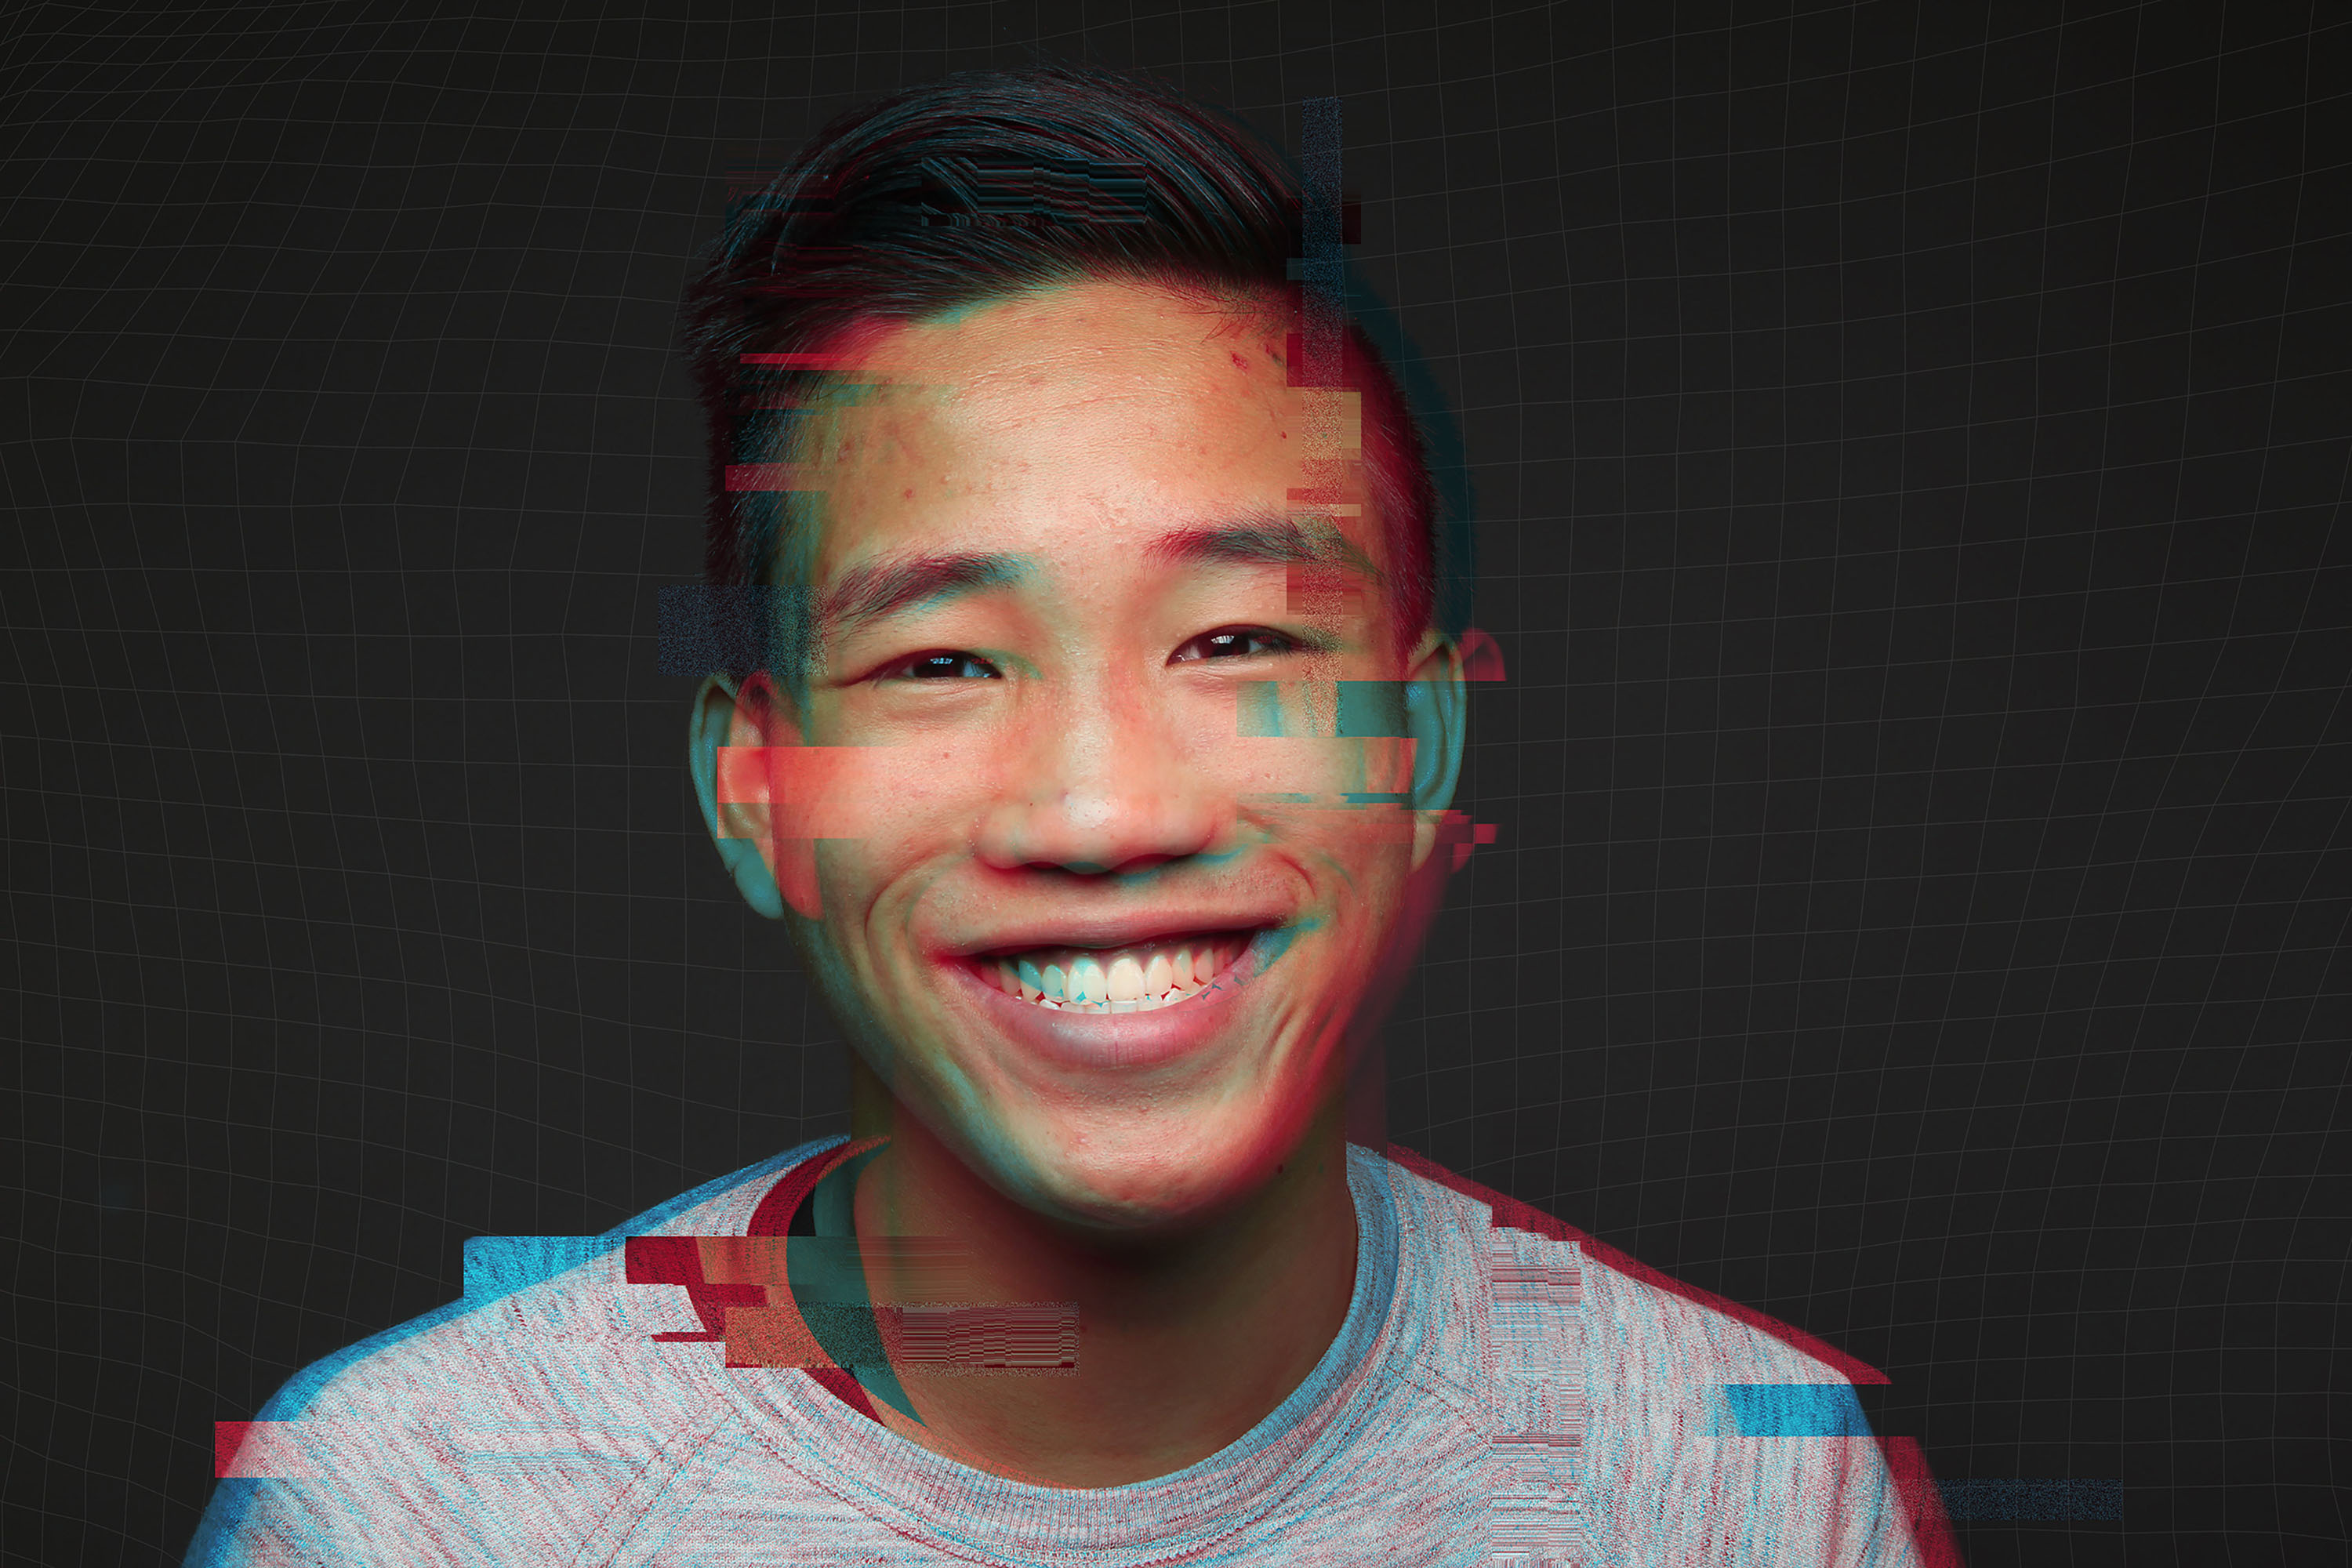 A happy man with a glitchy overlay